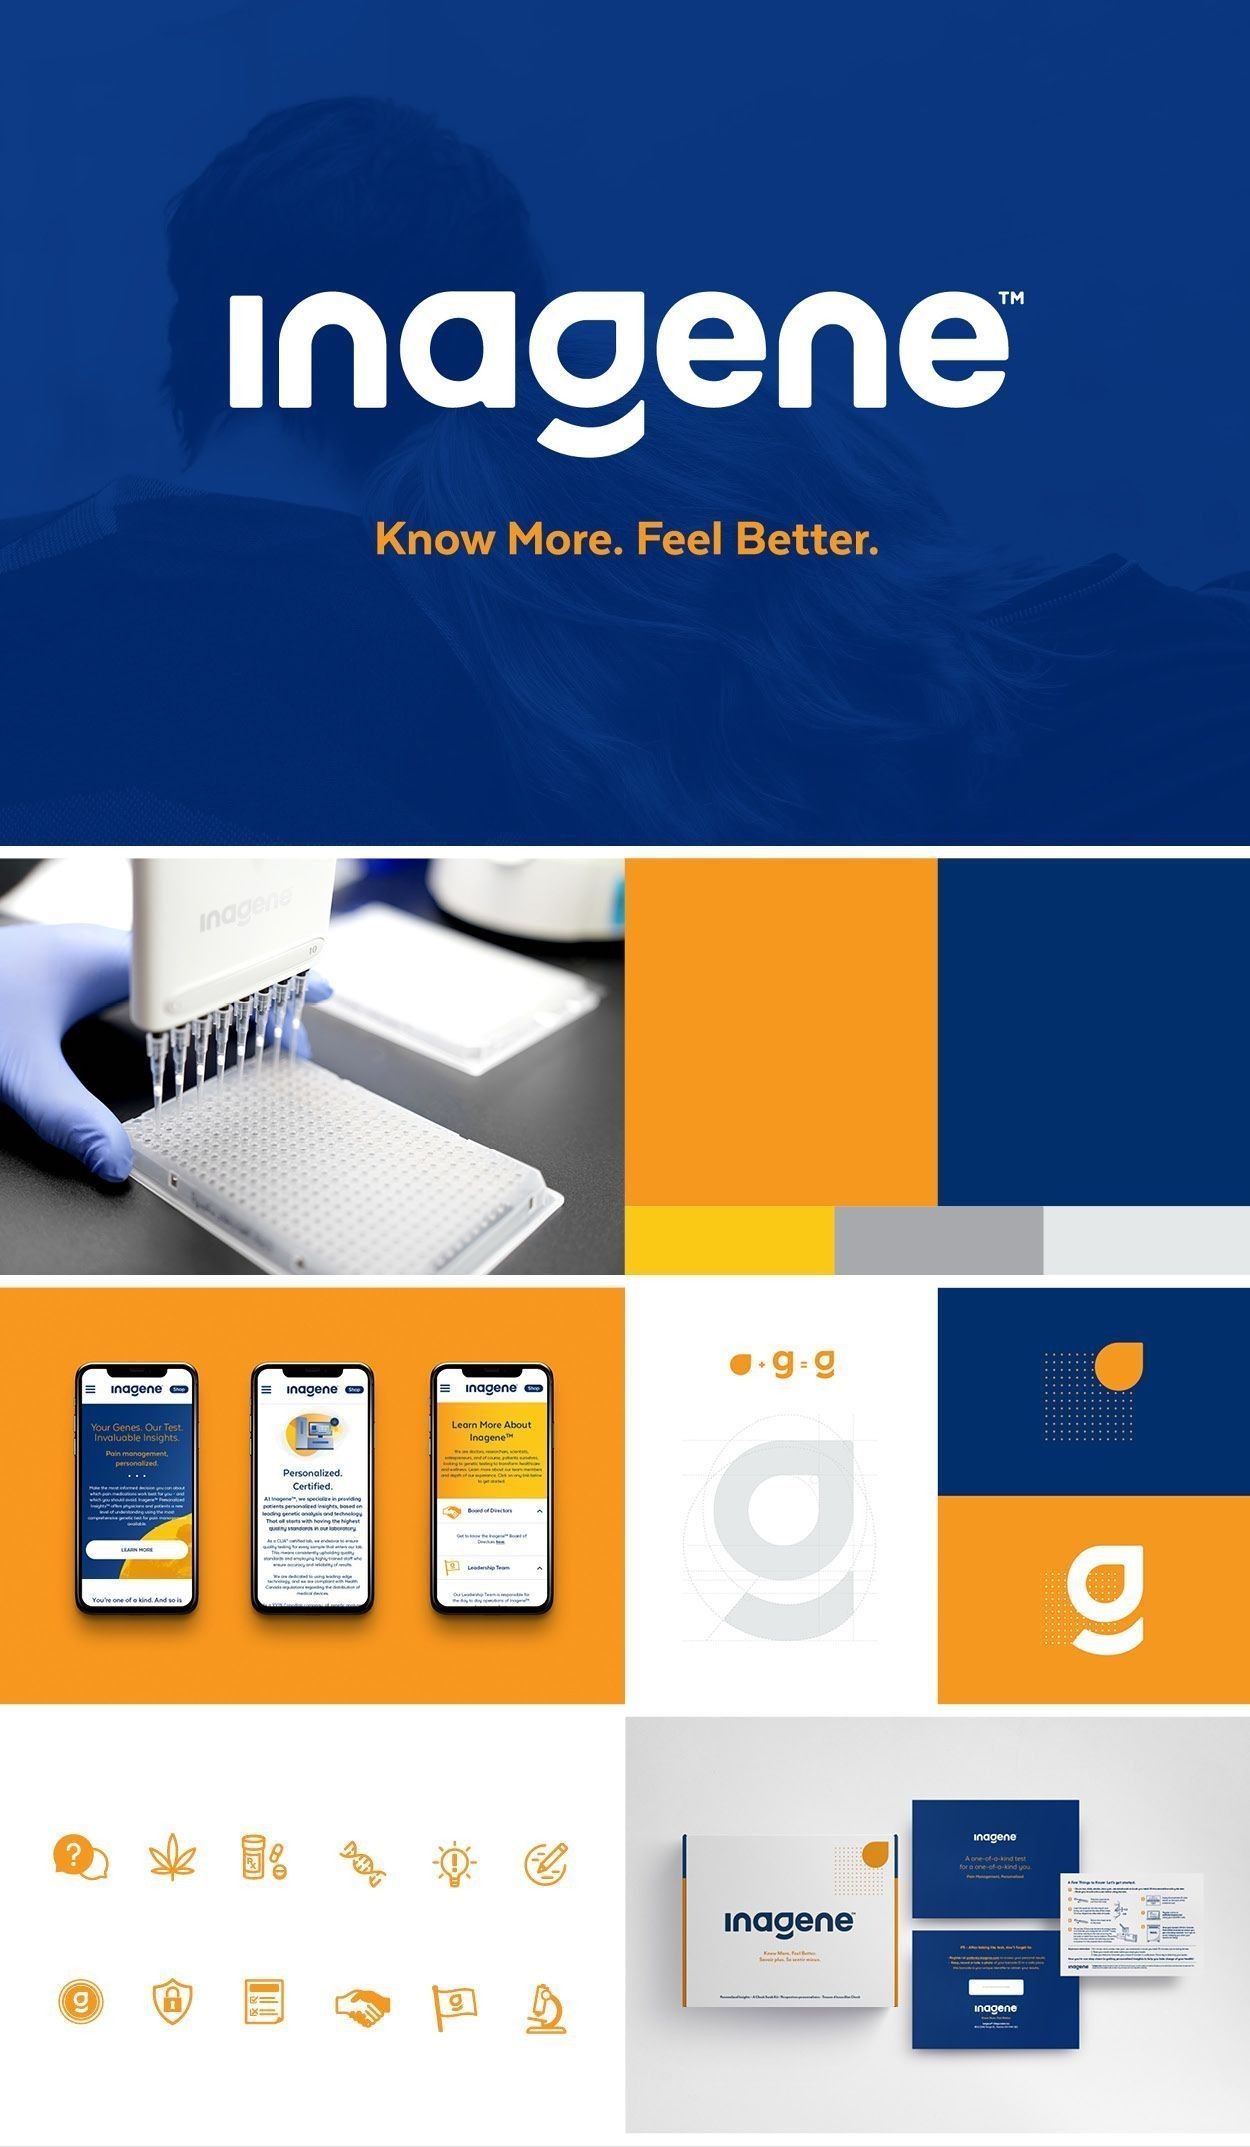 An idea concept that represents blue and orange color palette, font pairing, style of illustrations and photos, and logo